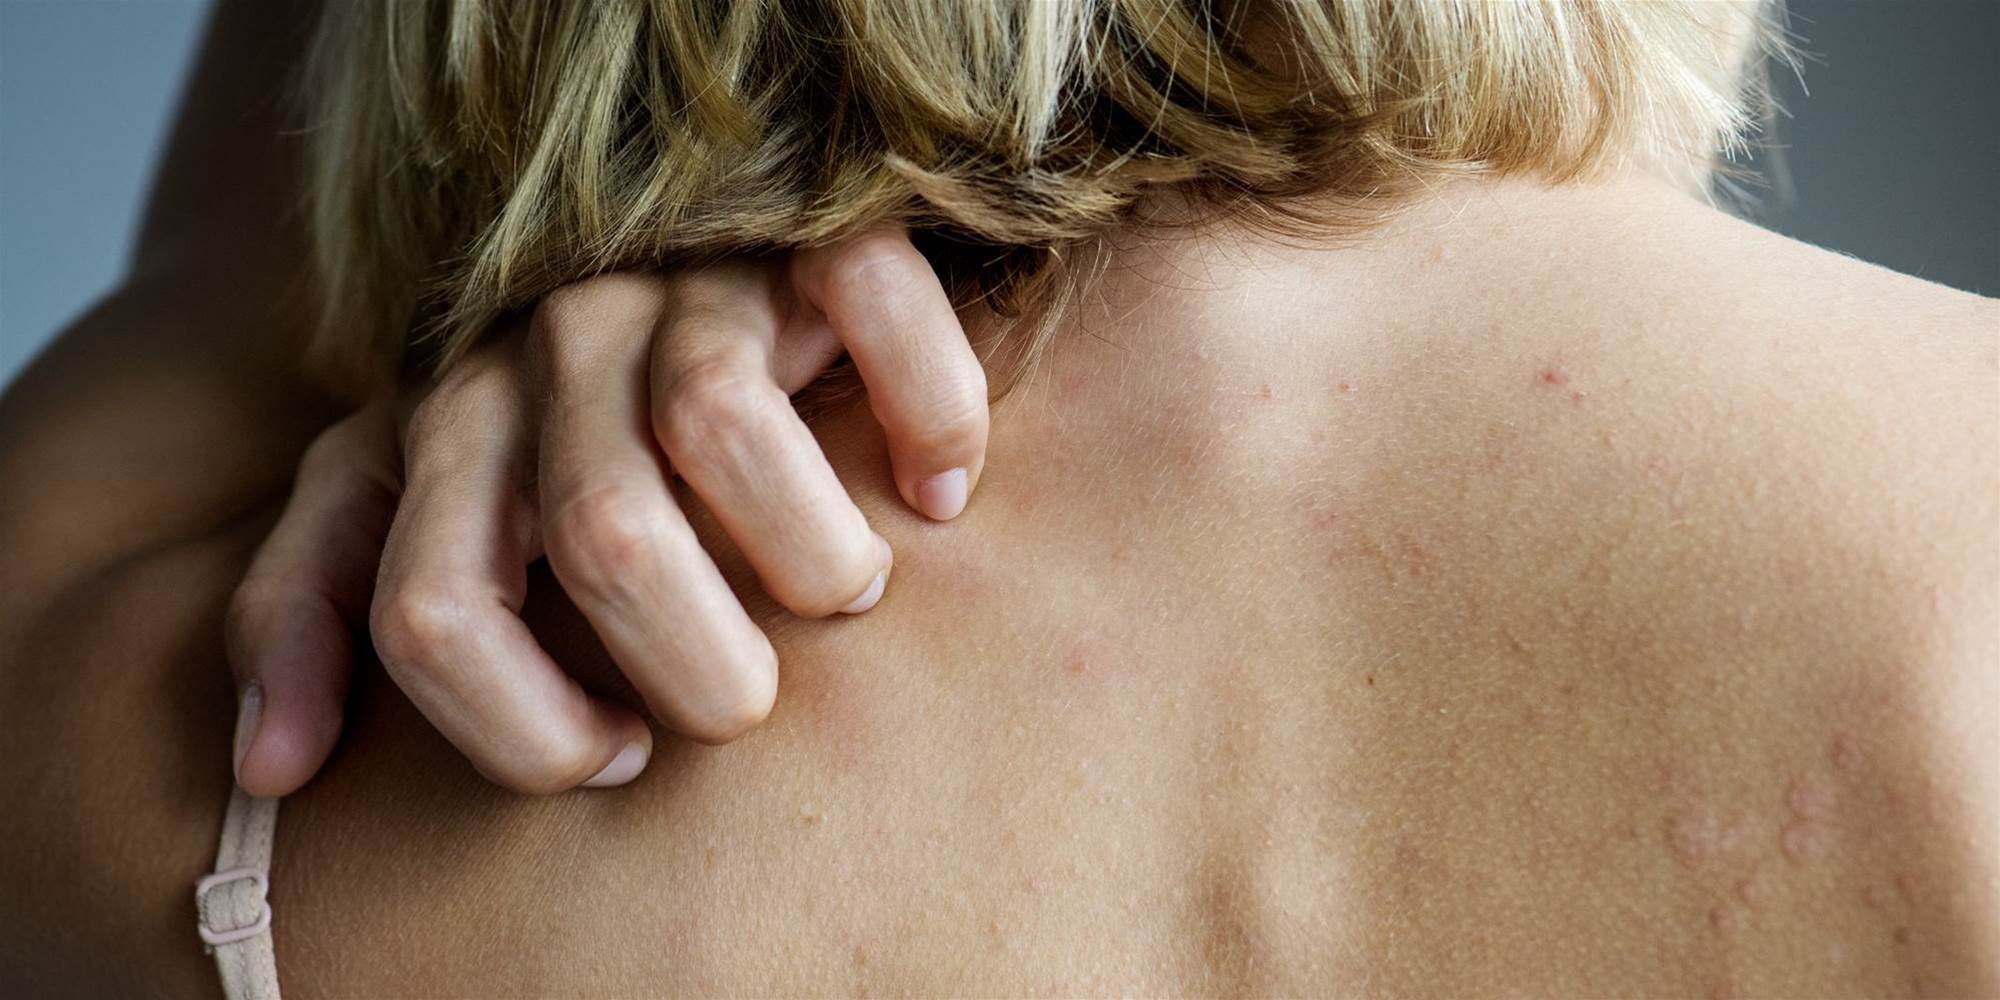 What Causes Psoriasis, Exactly?